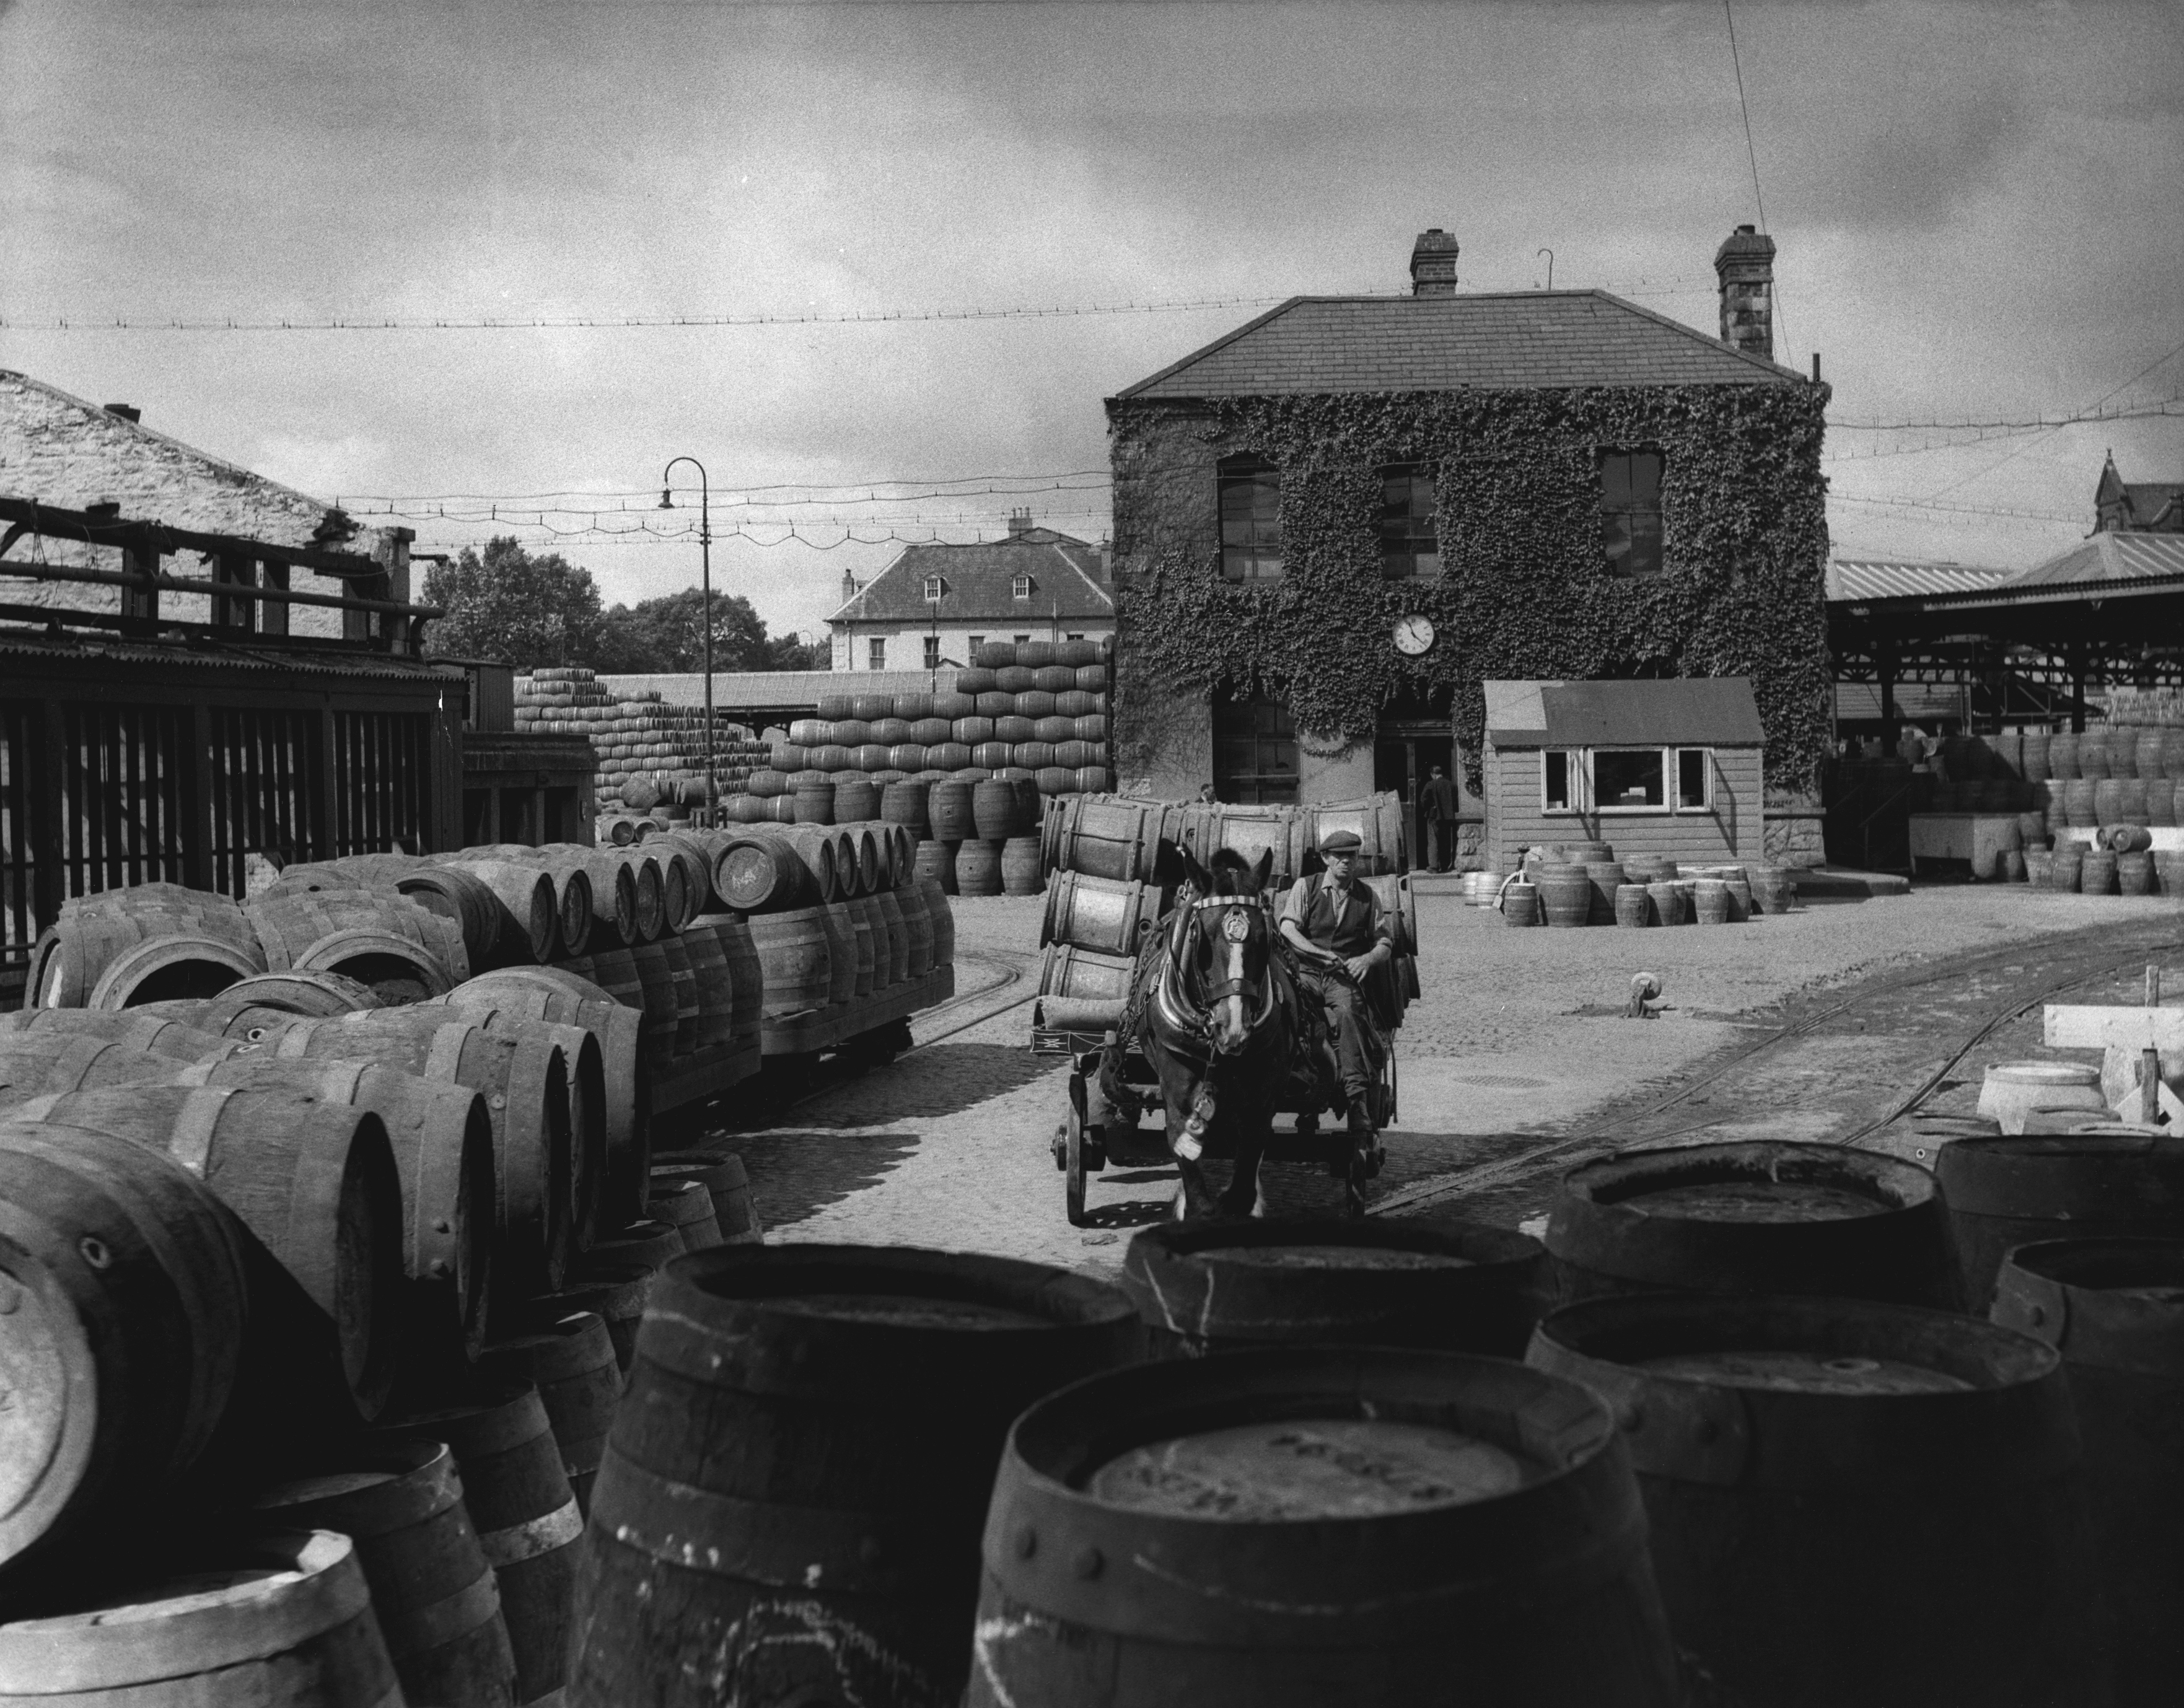 Cooperage Yard at Guinness Brewery, Dublin